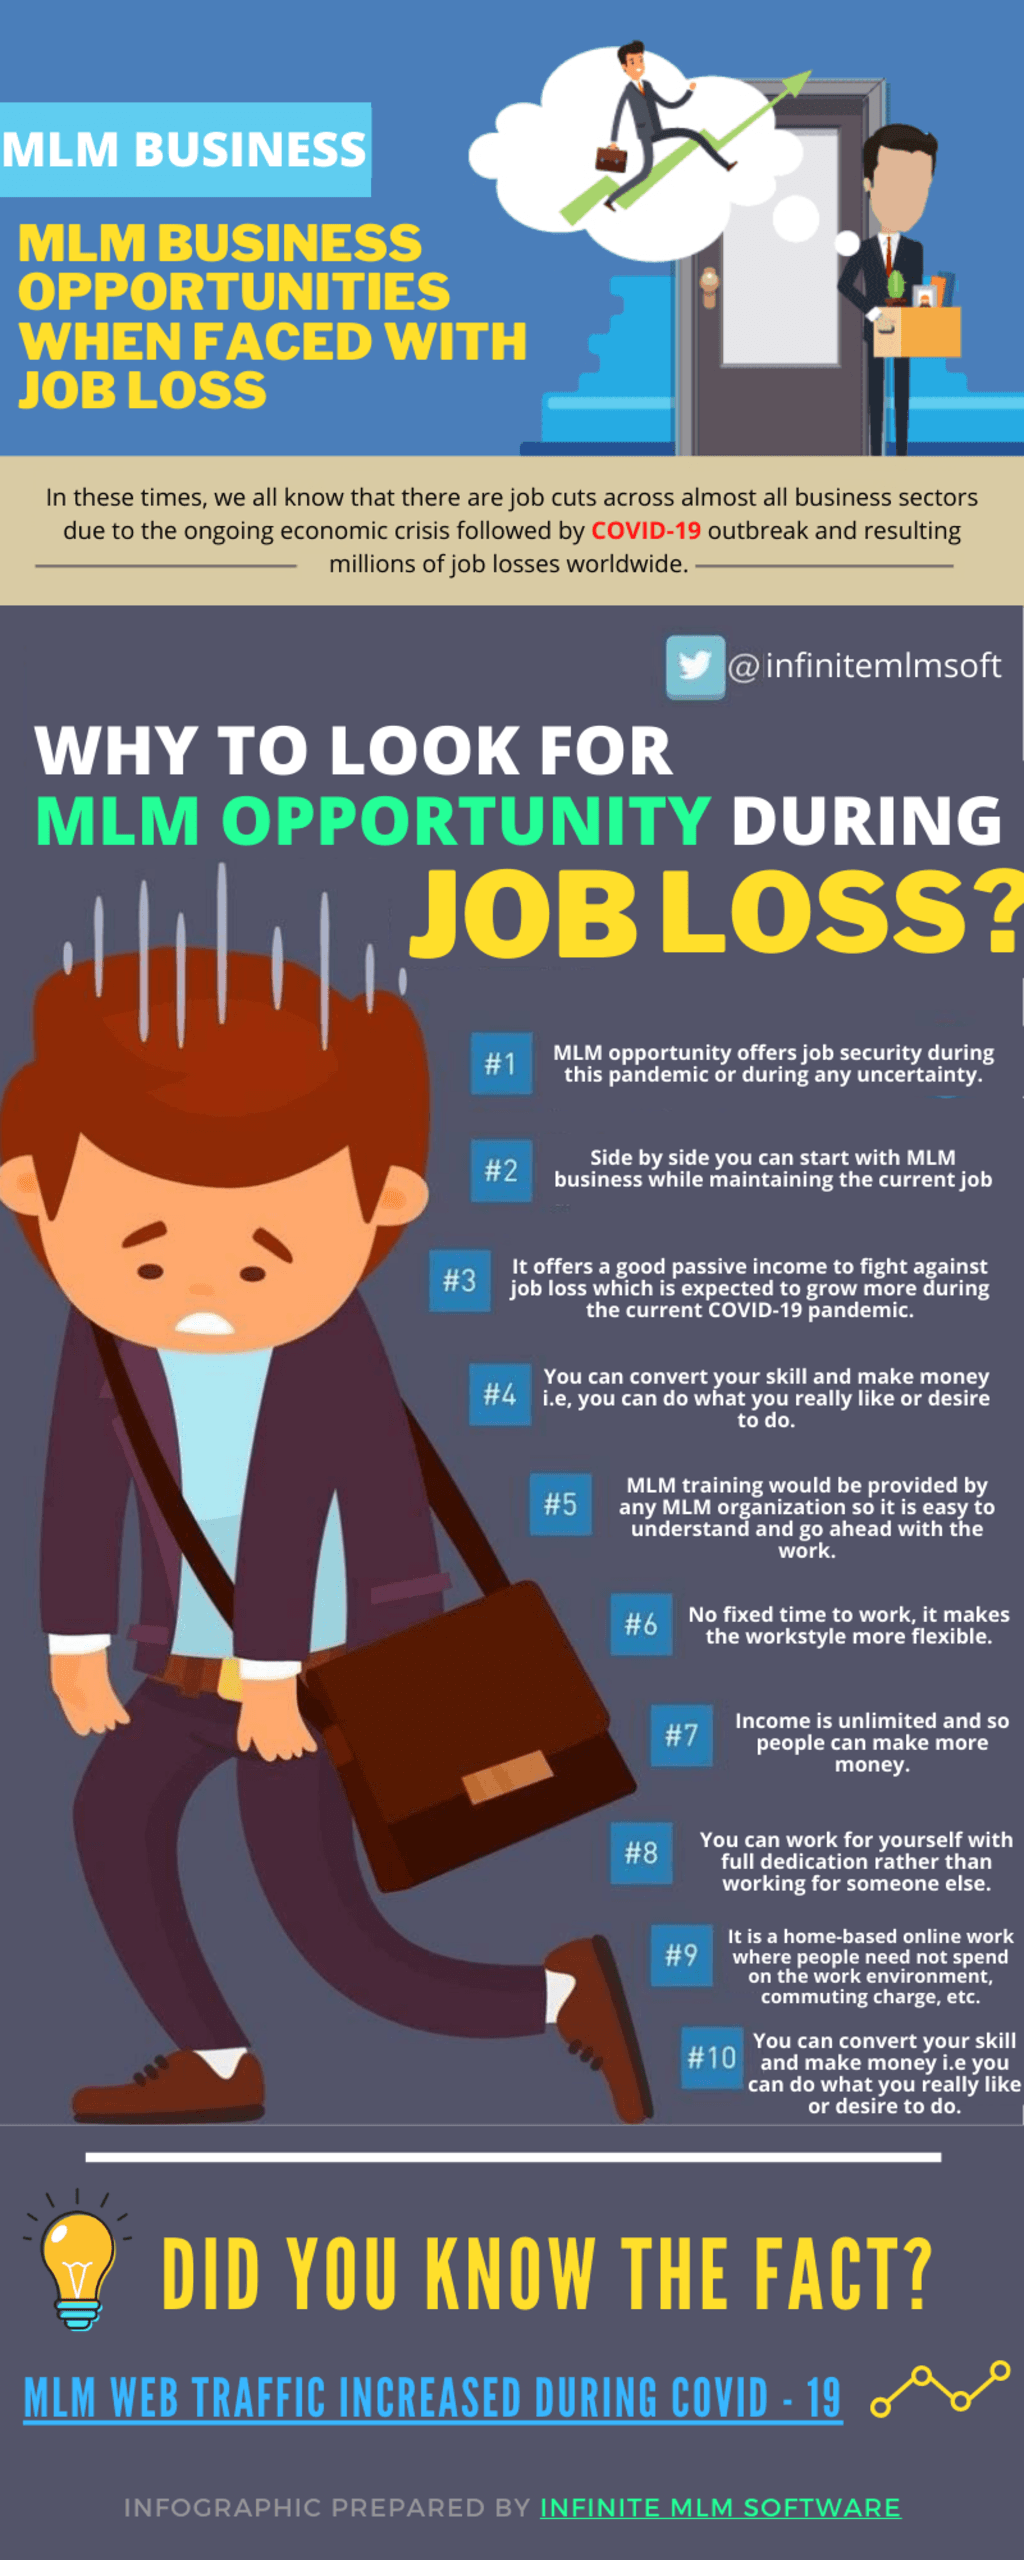 MLM Business Opportunities When Faced With Job Loss - Infogr... via Infinite MLM Software